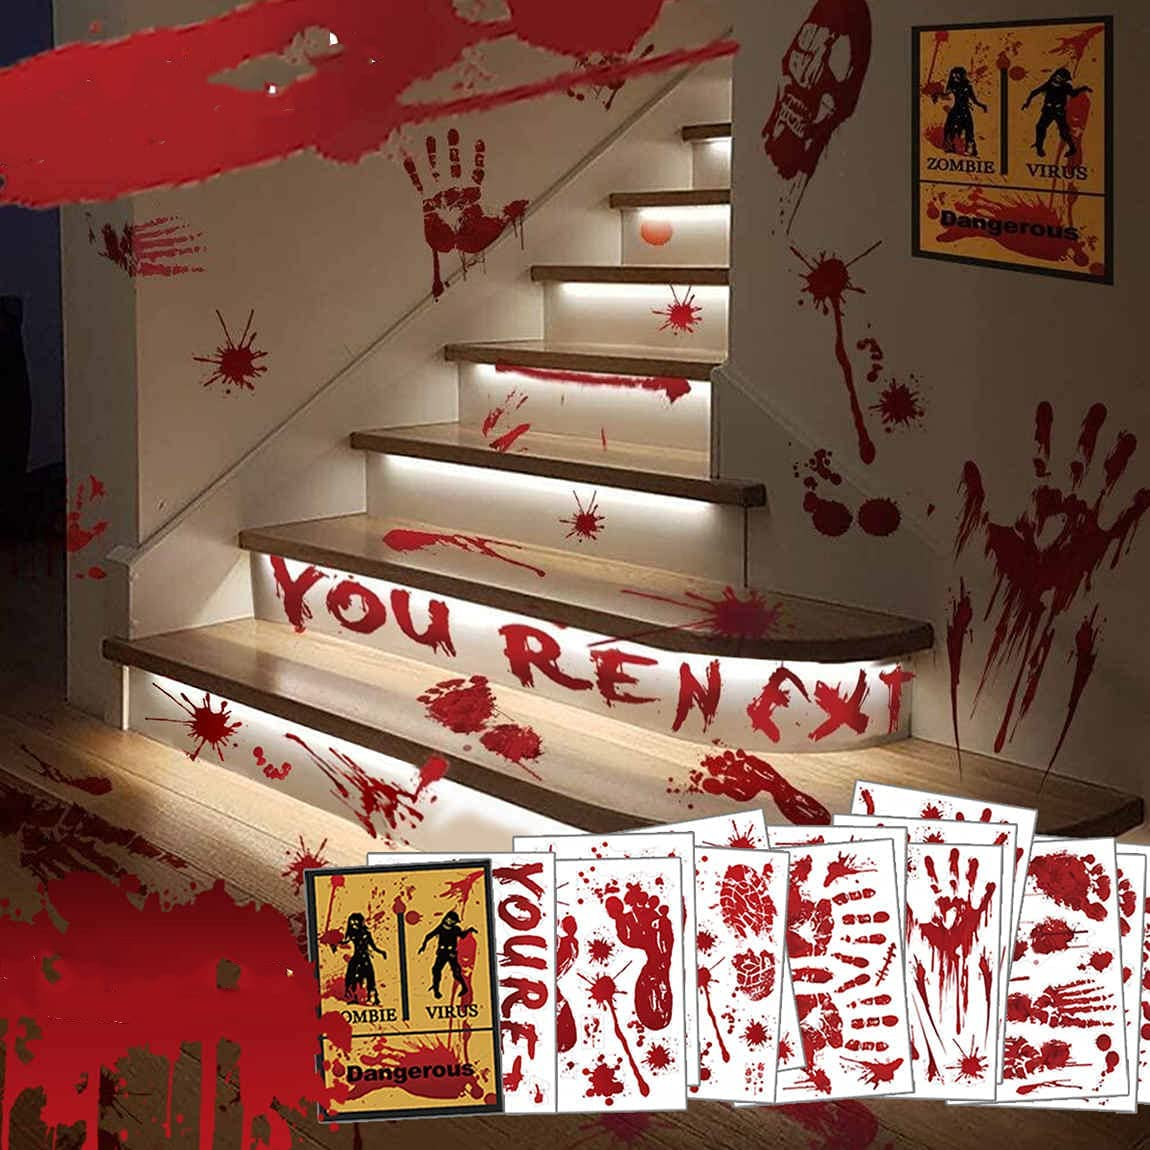 Halloween Decorations Bloody Handprint Footprint Clings, 135PCS Scary Floor Window Stickers, 14 Sheets Creepy Wall Decals for Halloween Party Decorations Haunted House Vampire Zombie Decor